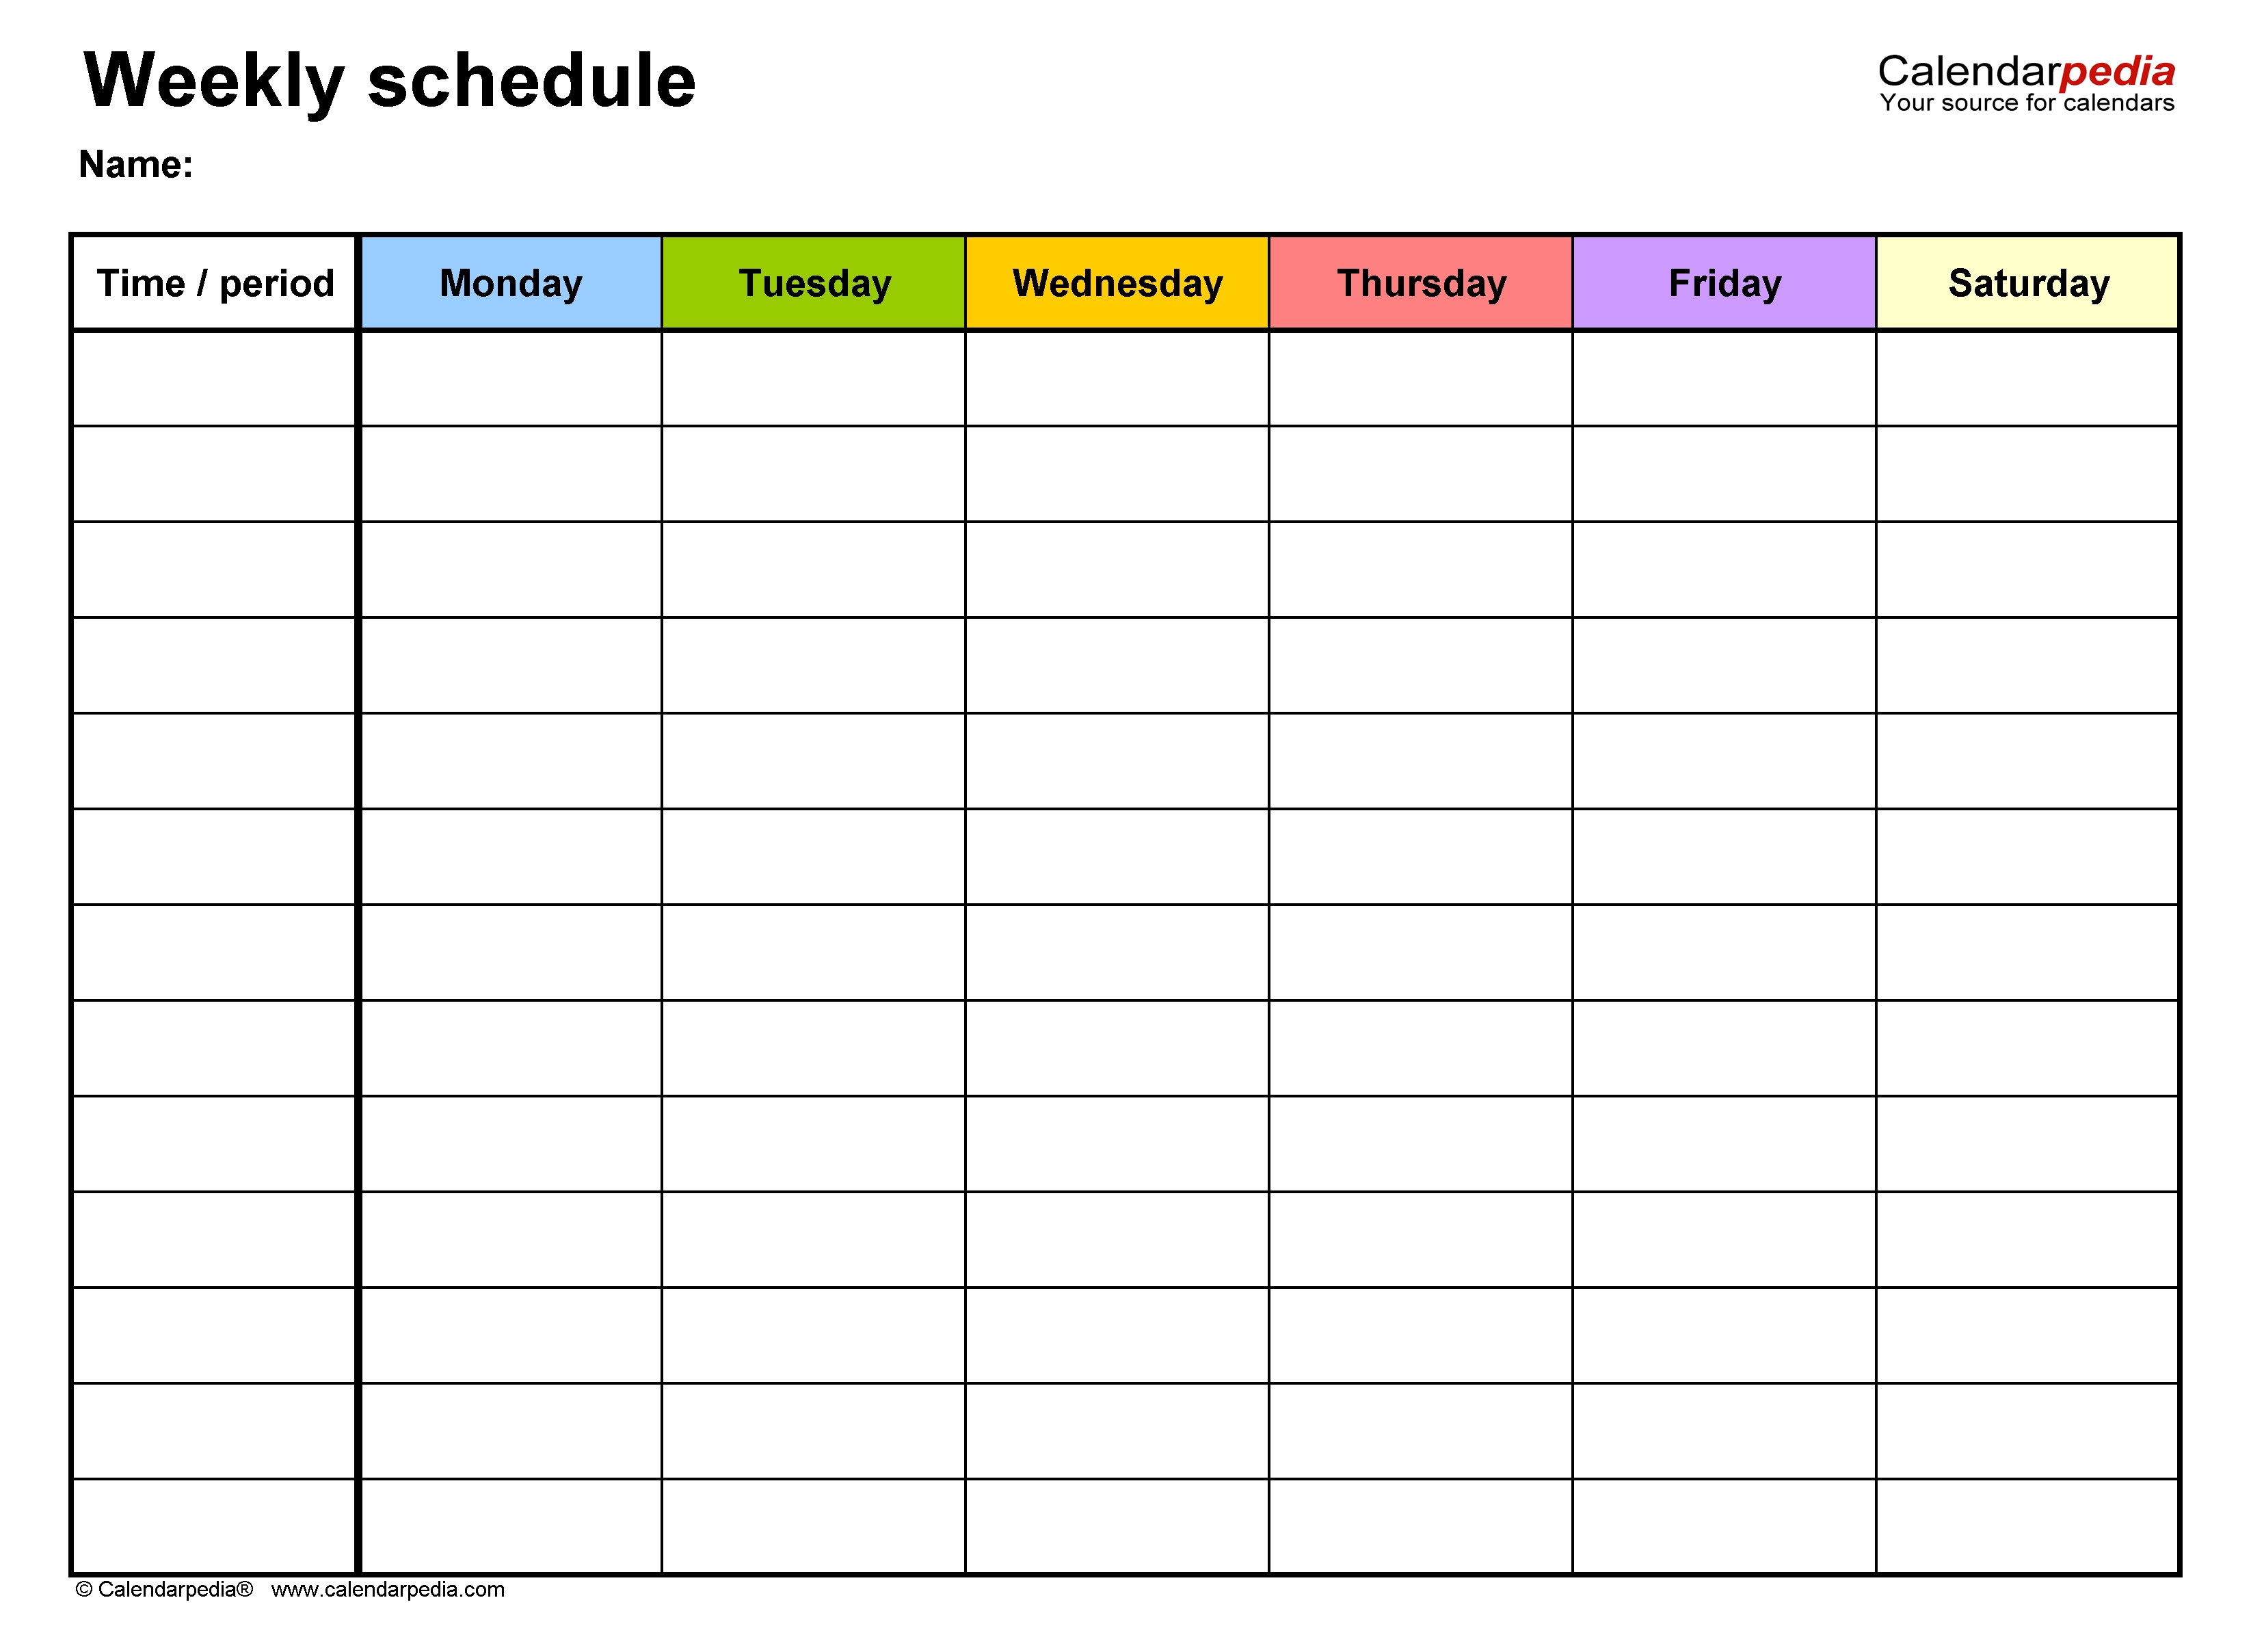 Free Weekly Schedules For Excel - 18 Templates Training Calendar Template Xls